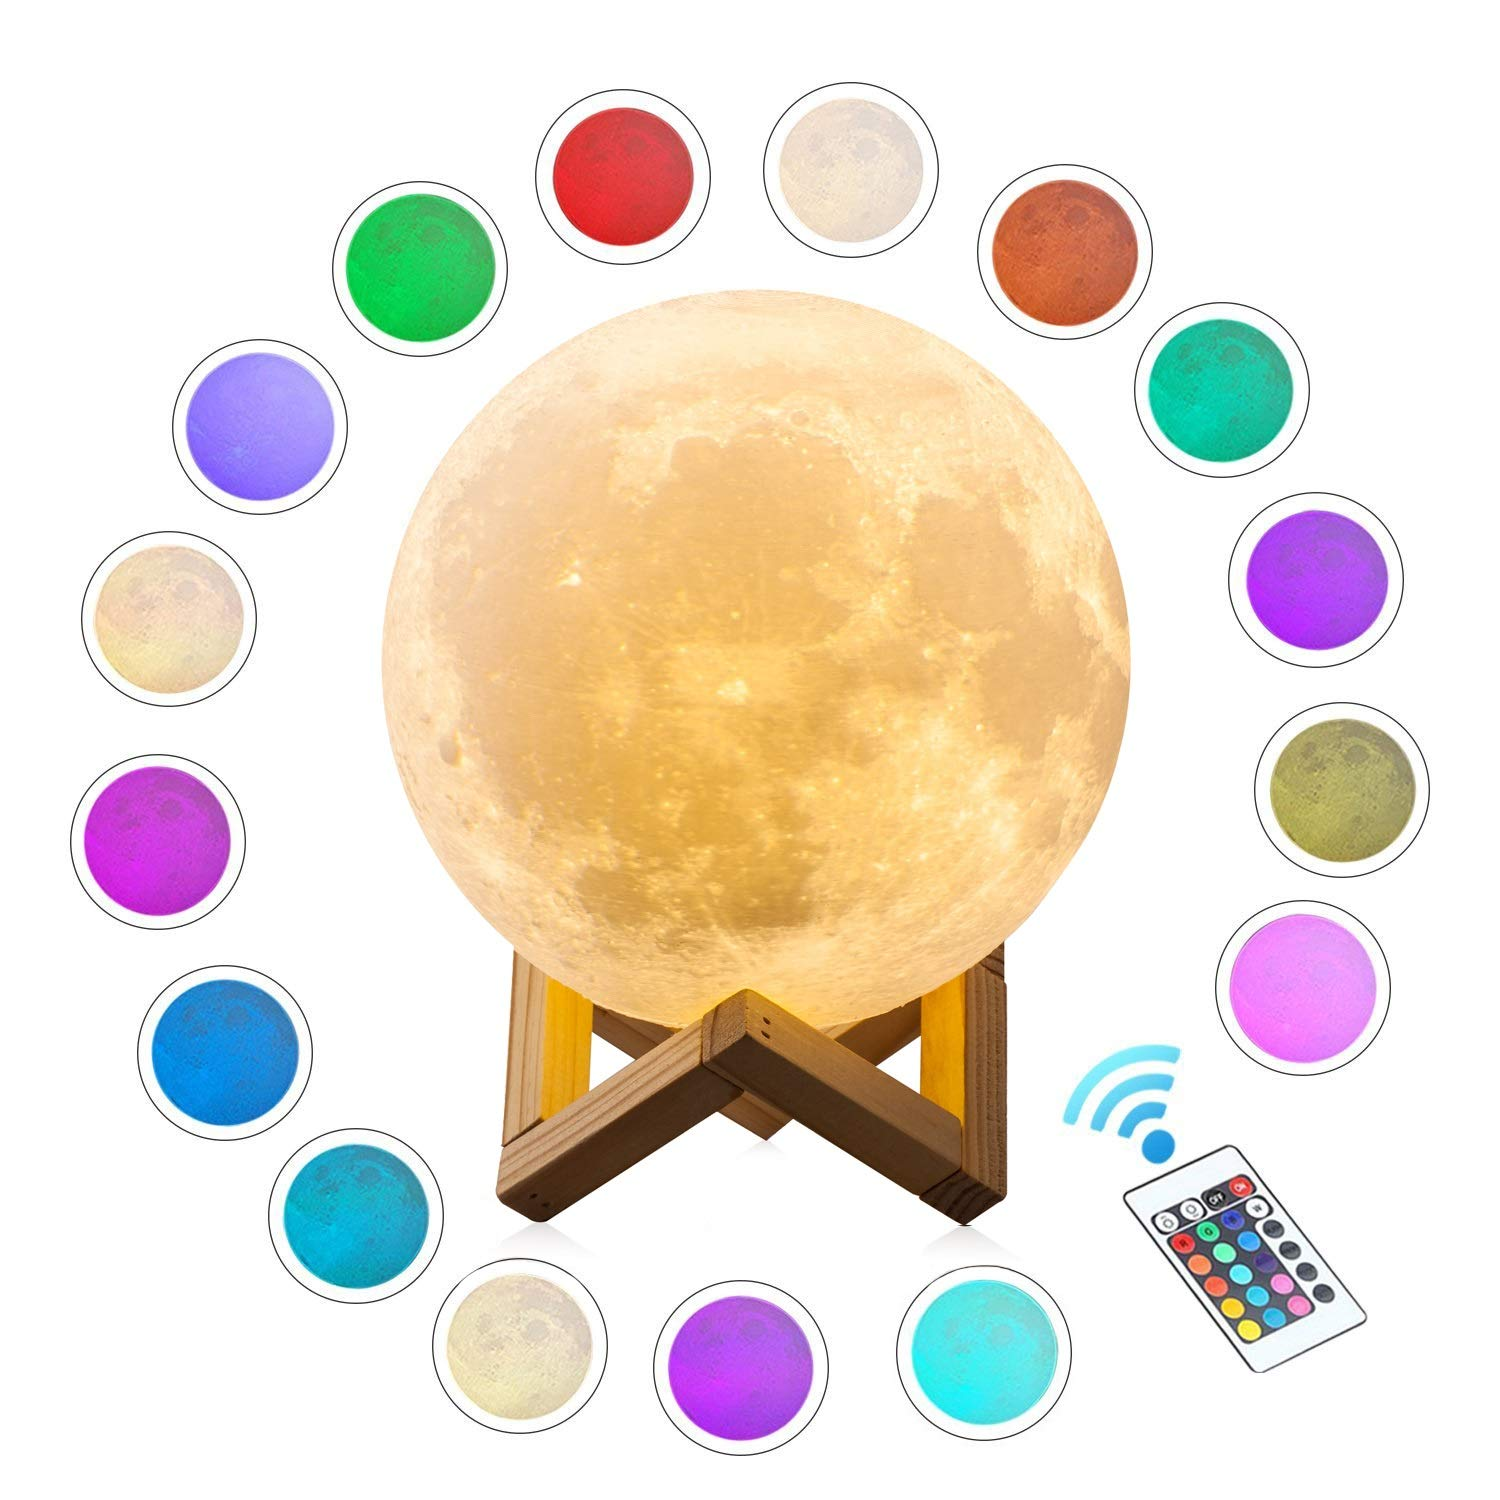 Extra Large!!! CPLA Moon Lamp 16 Colors LED Lunar Lamp Dimmable Brightness with Remote & Touch Control Large Moon Light Gifts for Love Dimeter 7.1inch by CPLA